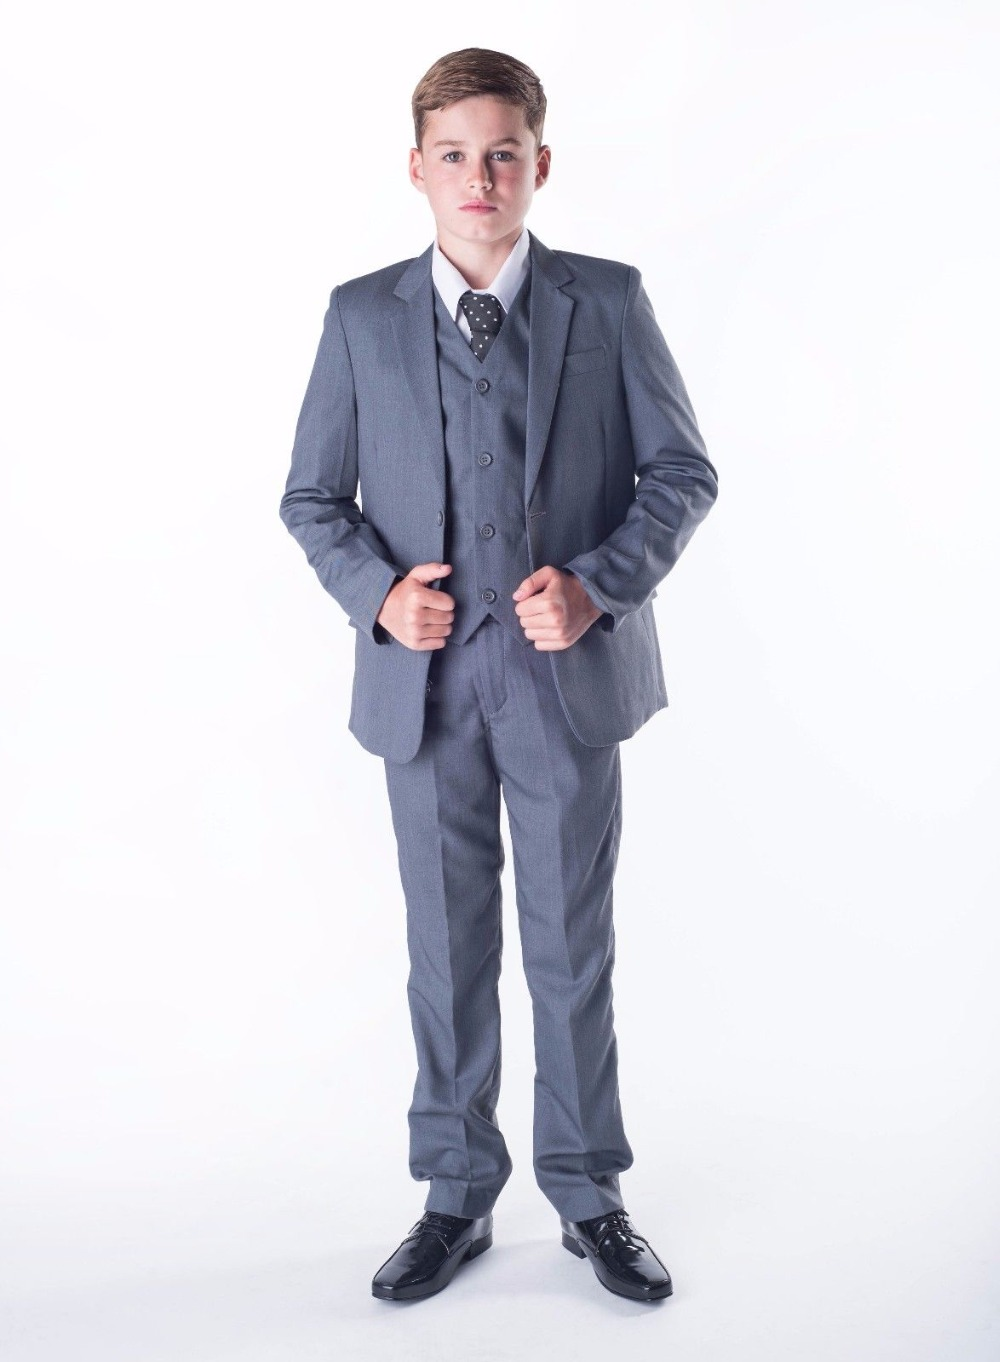 Boys Suits 3 Piece Wedding Suit Prom Page Boy Baby Formal Party 3 Colours инструменты page 3